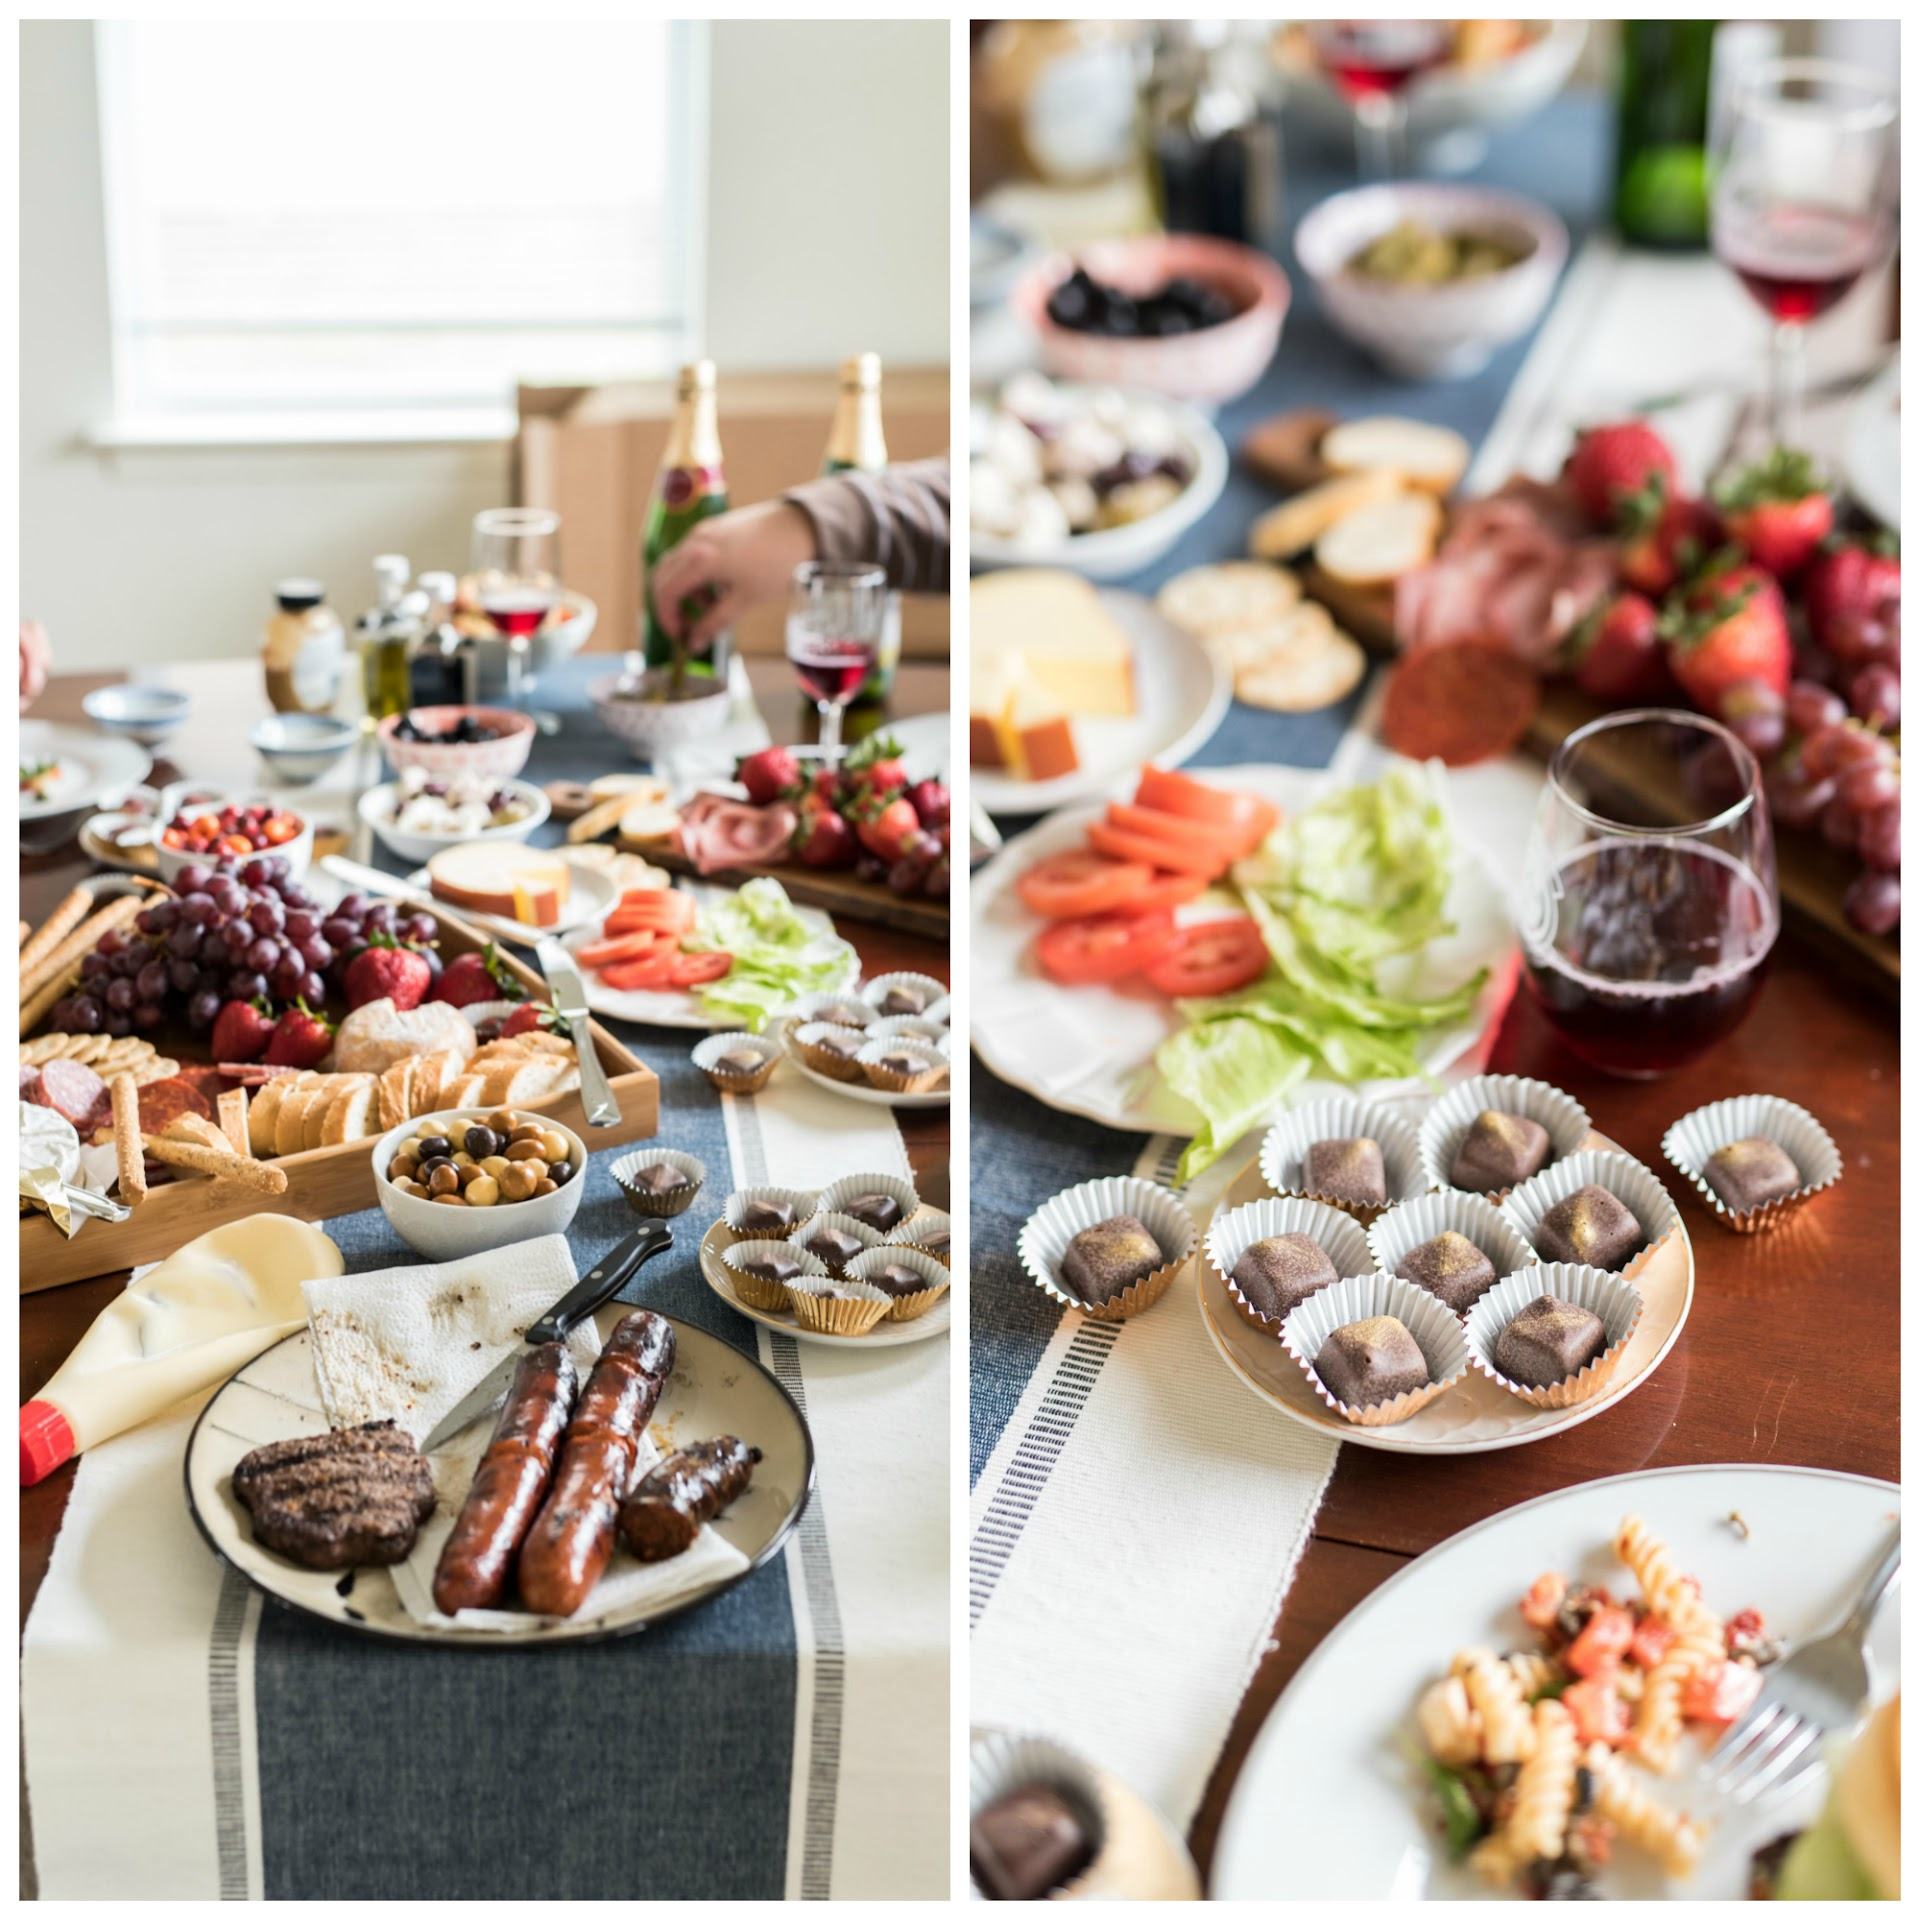 chocolate tasting party, dinner party ideas, menu, charcuterie, picnic food ideas, picnic party, cheese board, summer grilling party ideas, chocolate tasting,